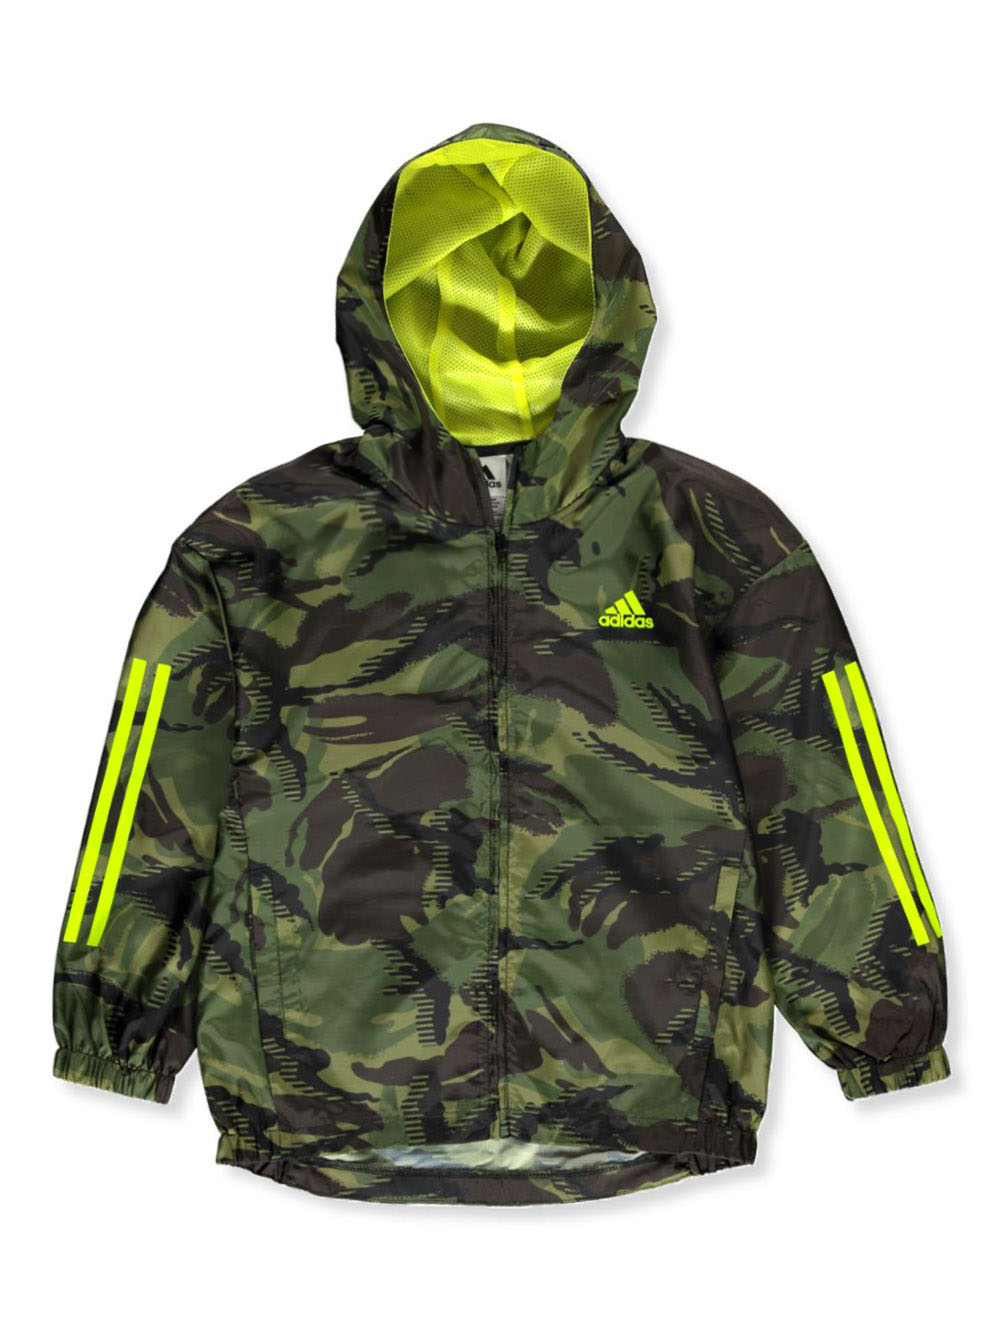 Boys' Camo Hooded Windbreaker Jacket